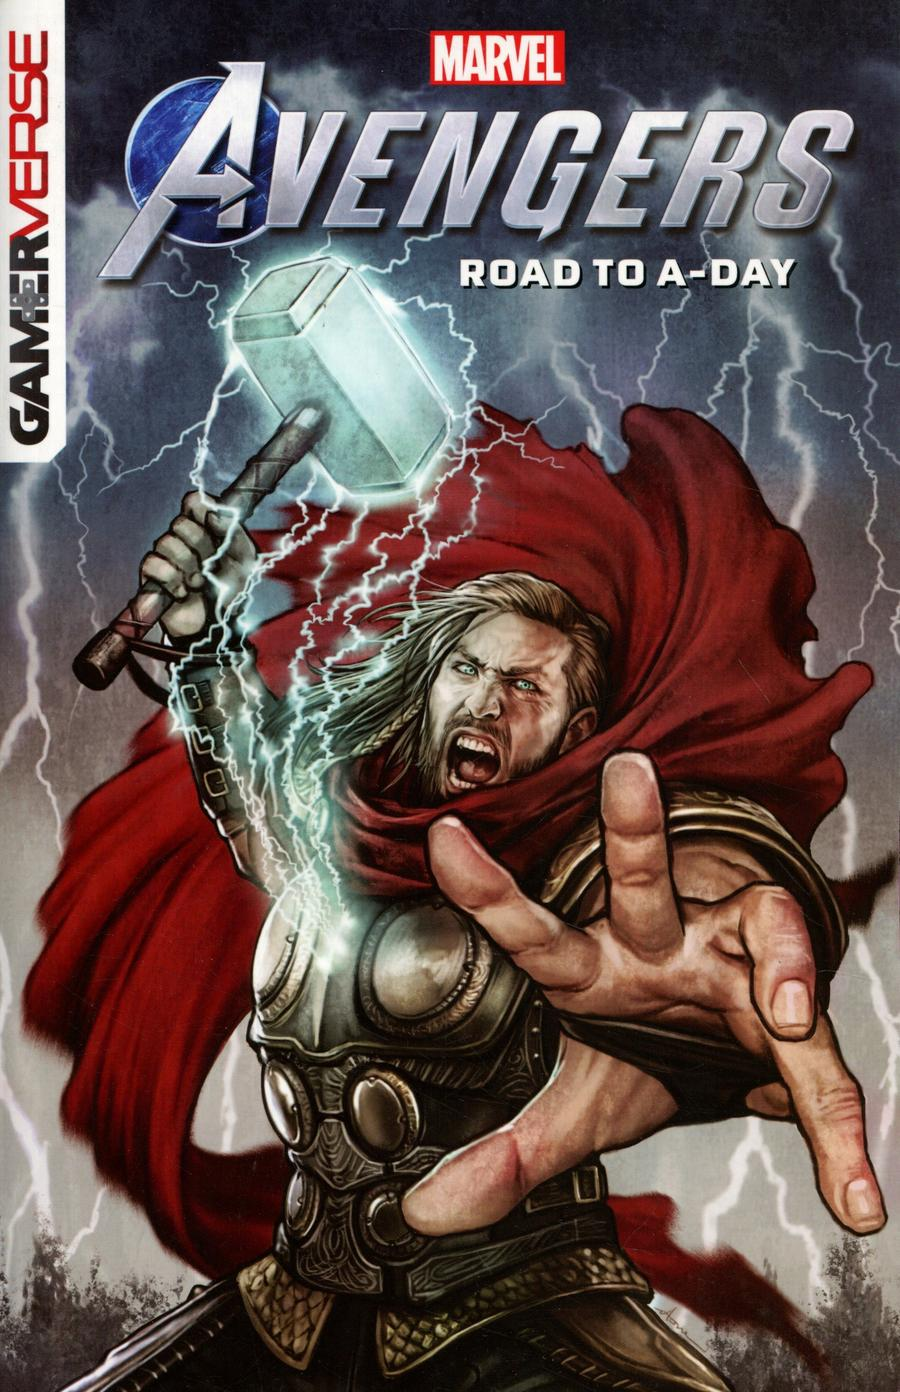 Marvels Avengers Road To A-Day TP (Gamerverse)